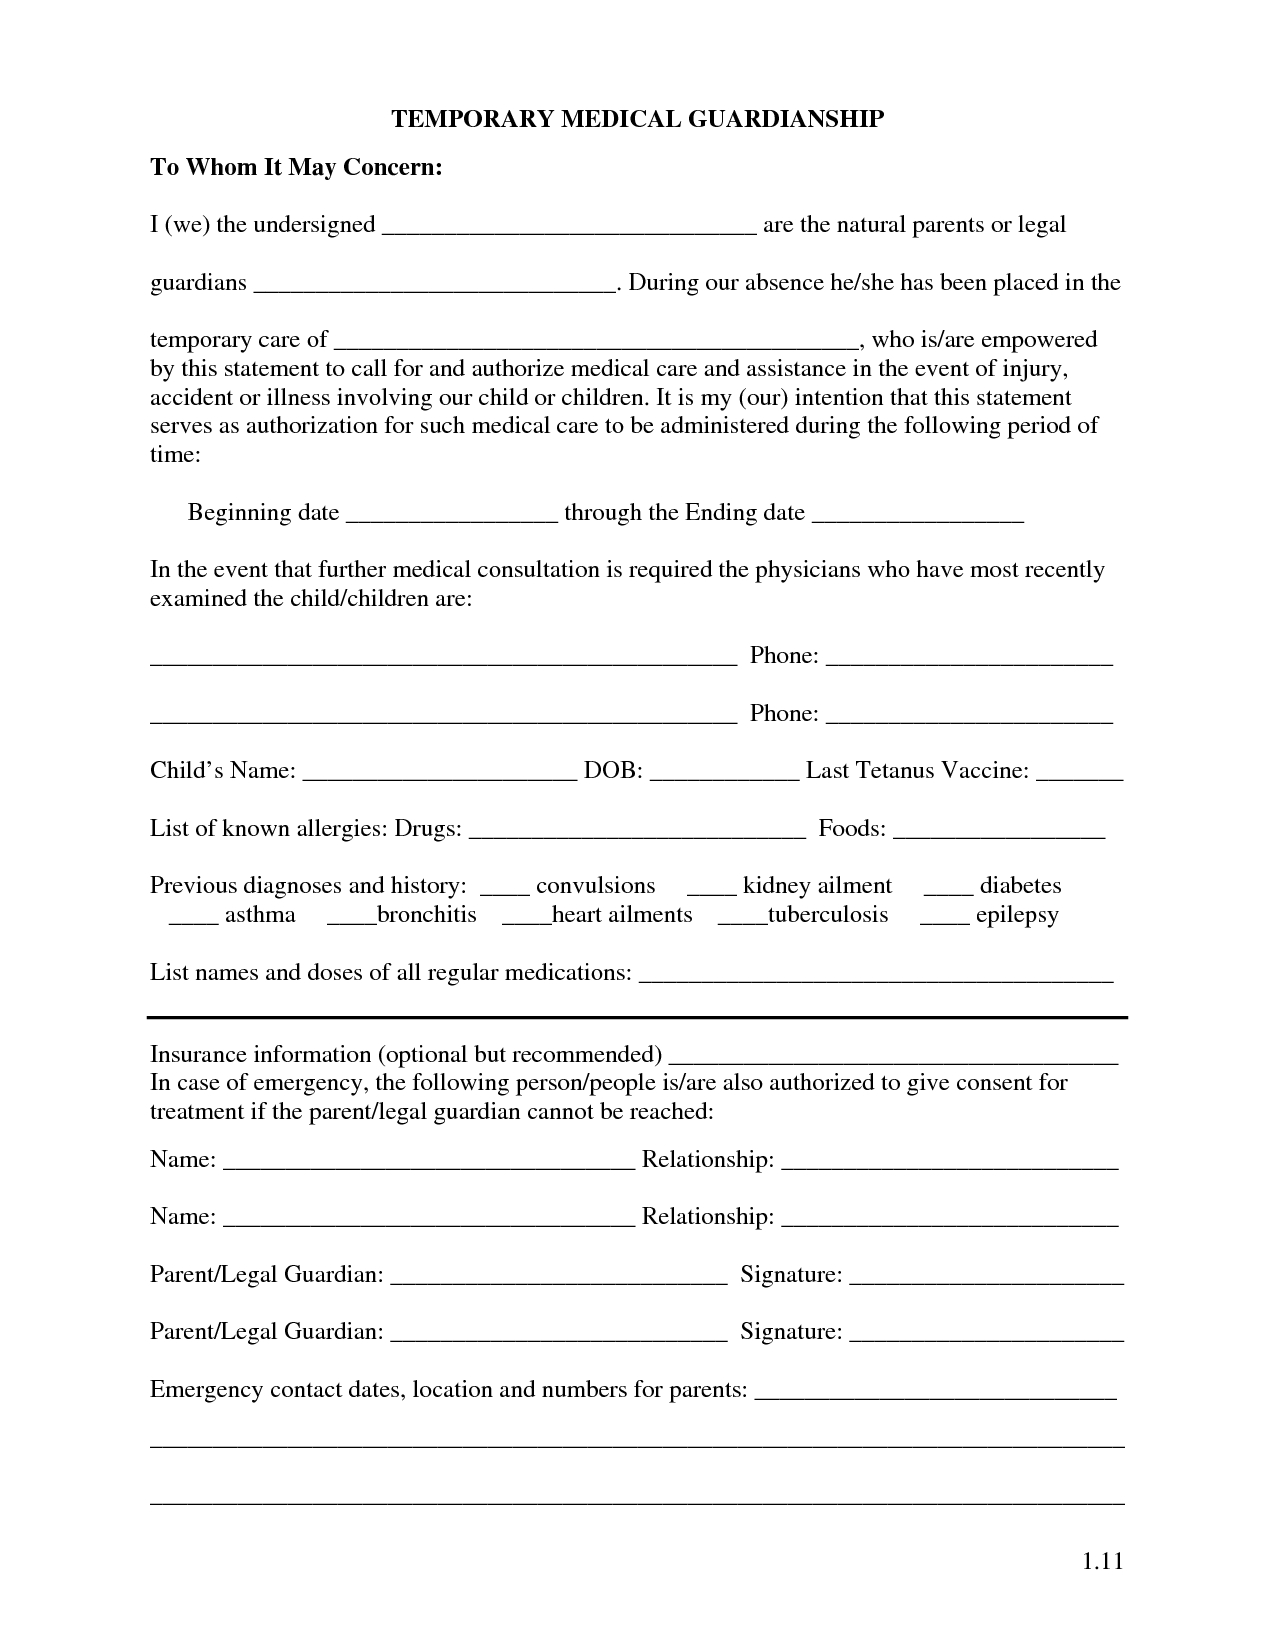 Free Printable Temporary Guardianship Forms | Forms | Child Custody - Free Printable Legal Guardianship Forms